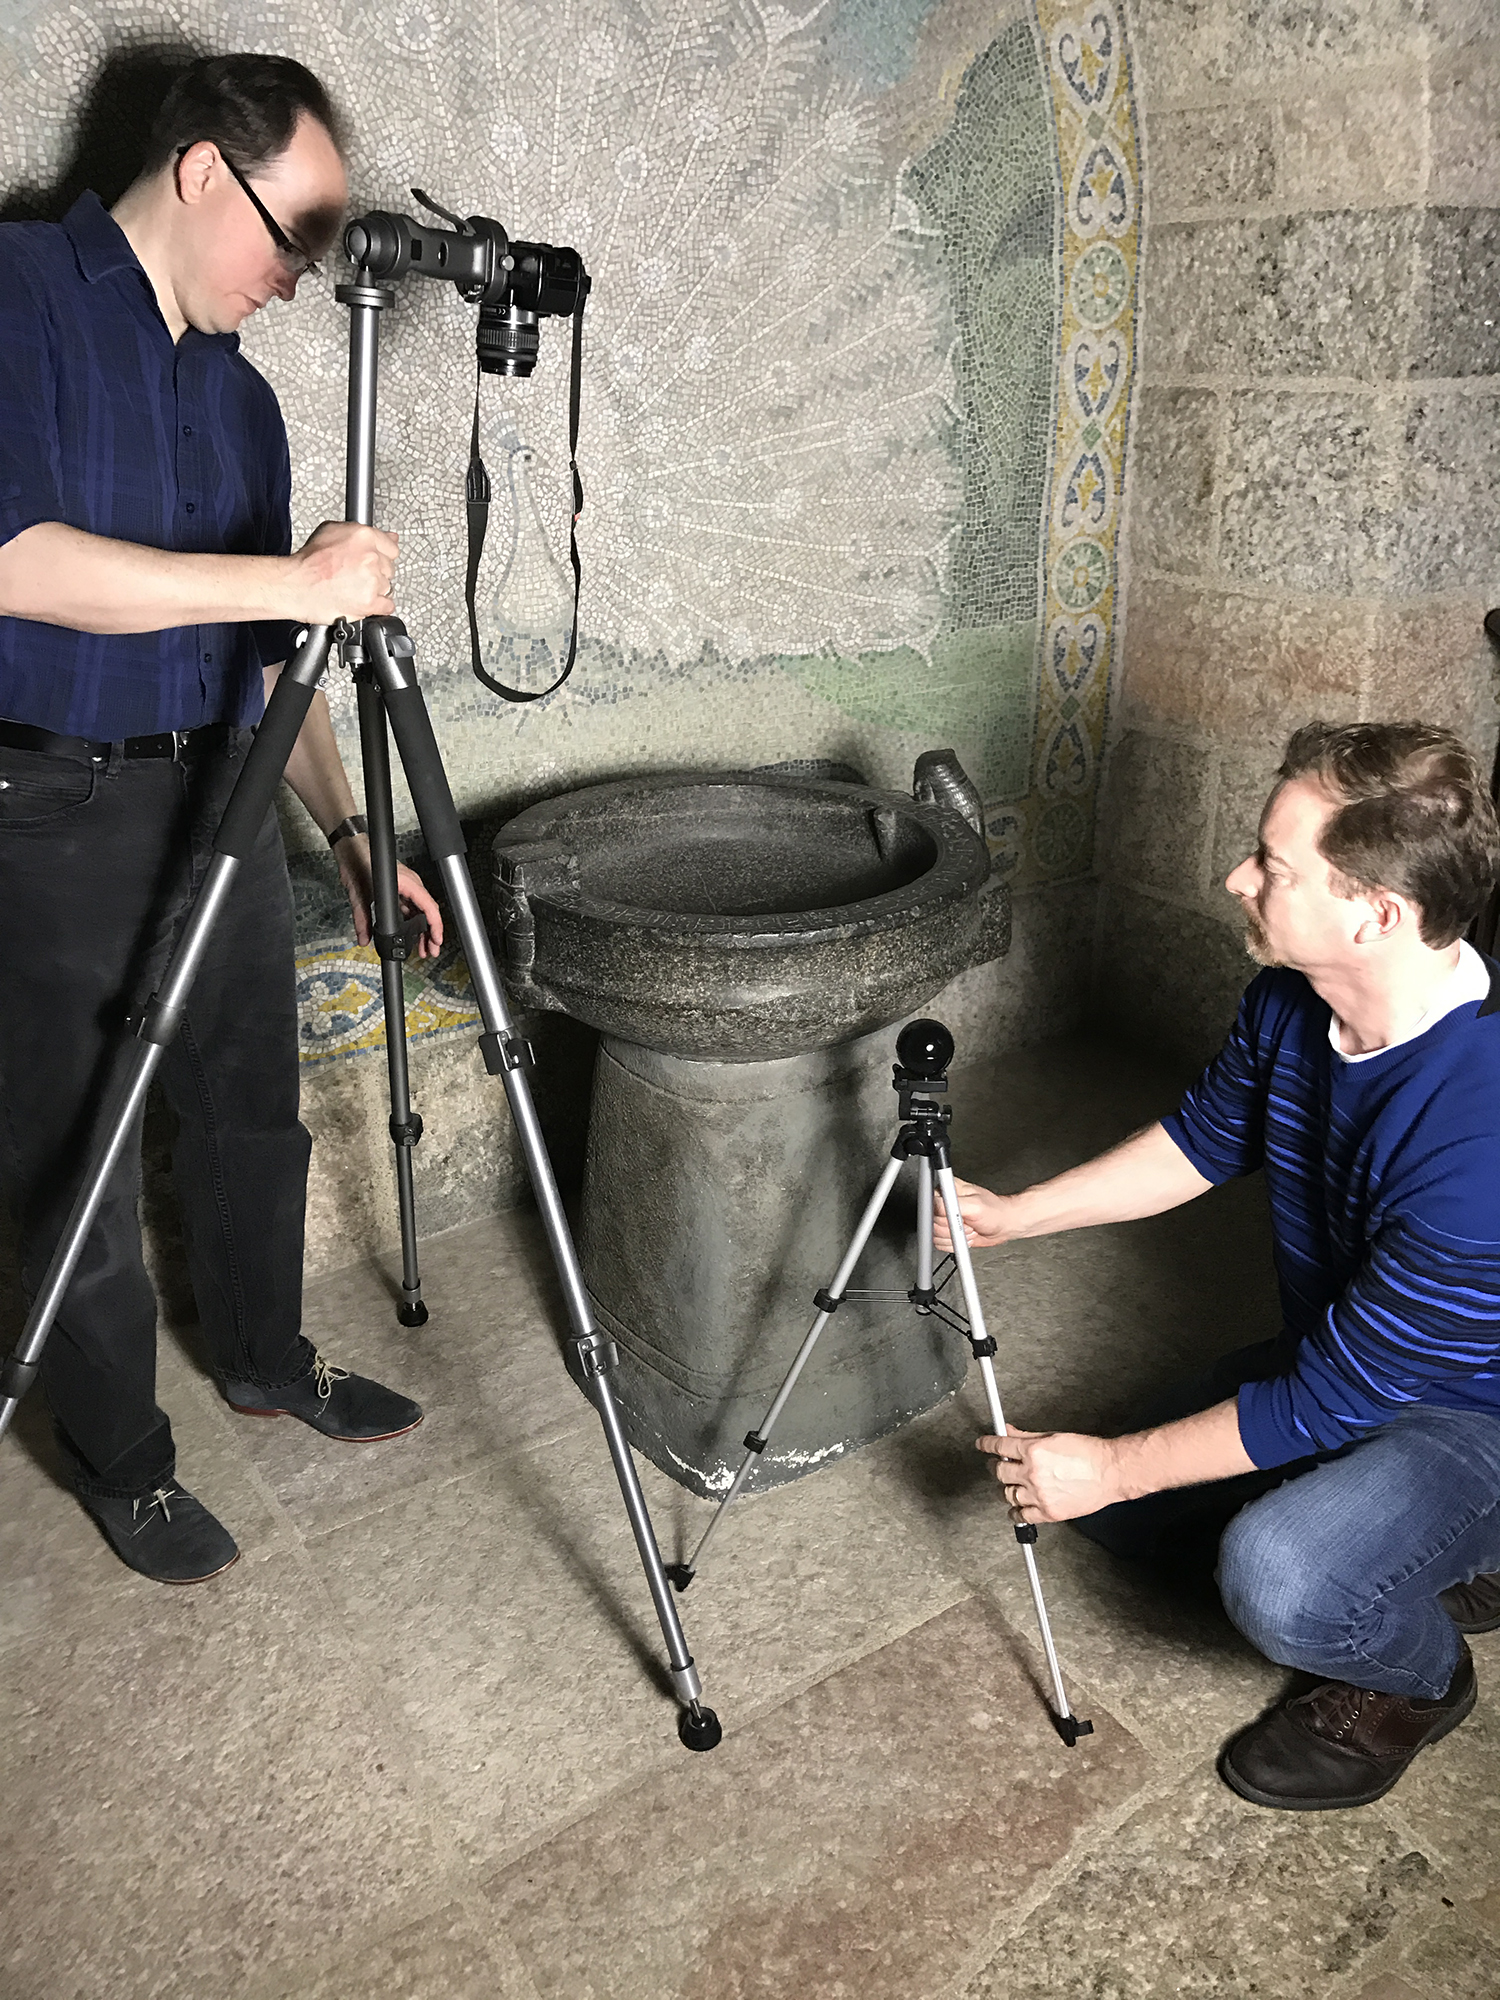 Figure 26: Egyptologists Dr. Kevin Cahail (left) and Dr. Josef Wegner of the Penn Museum carry out RTI photography on the basin to see if areas of the inscriptions that have damage can be made clearer by modifying the light.